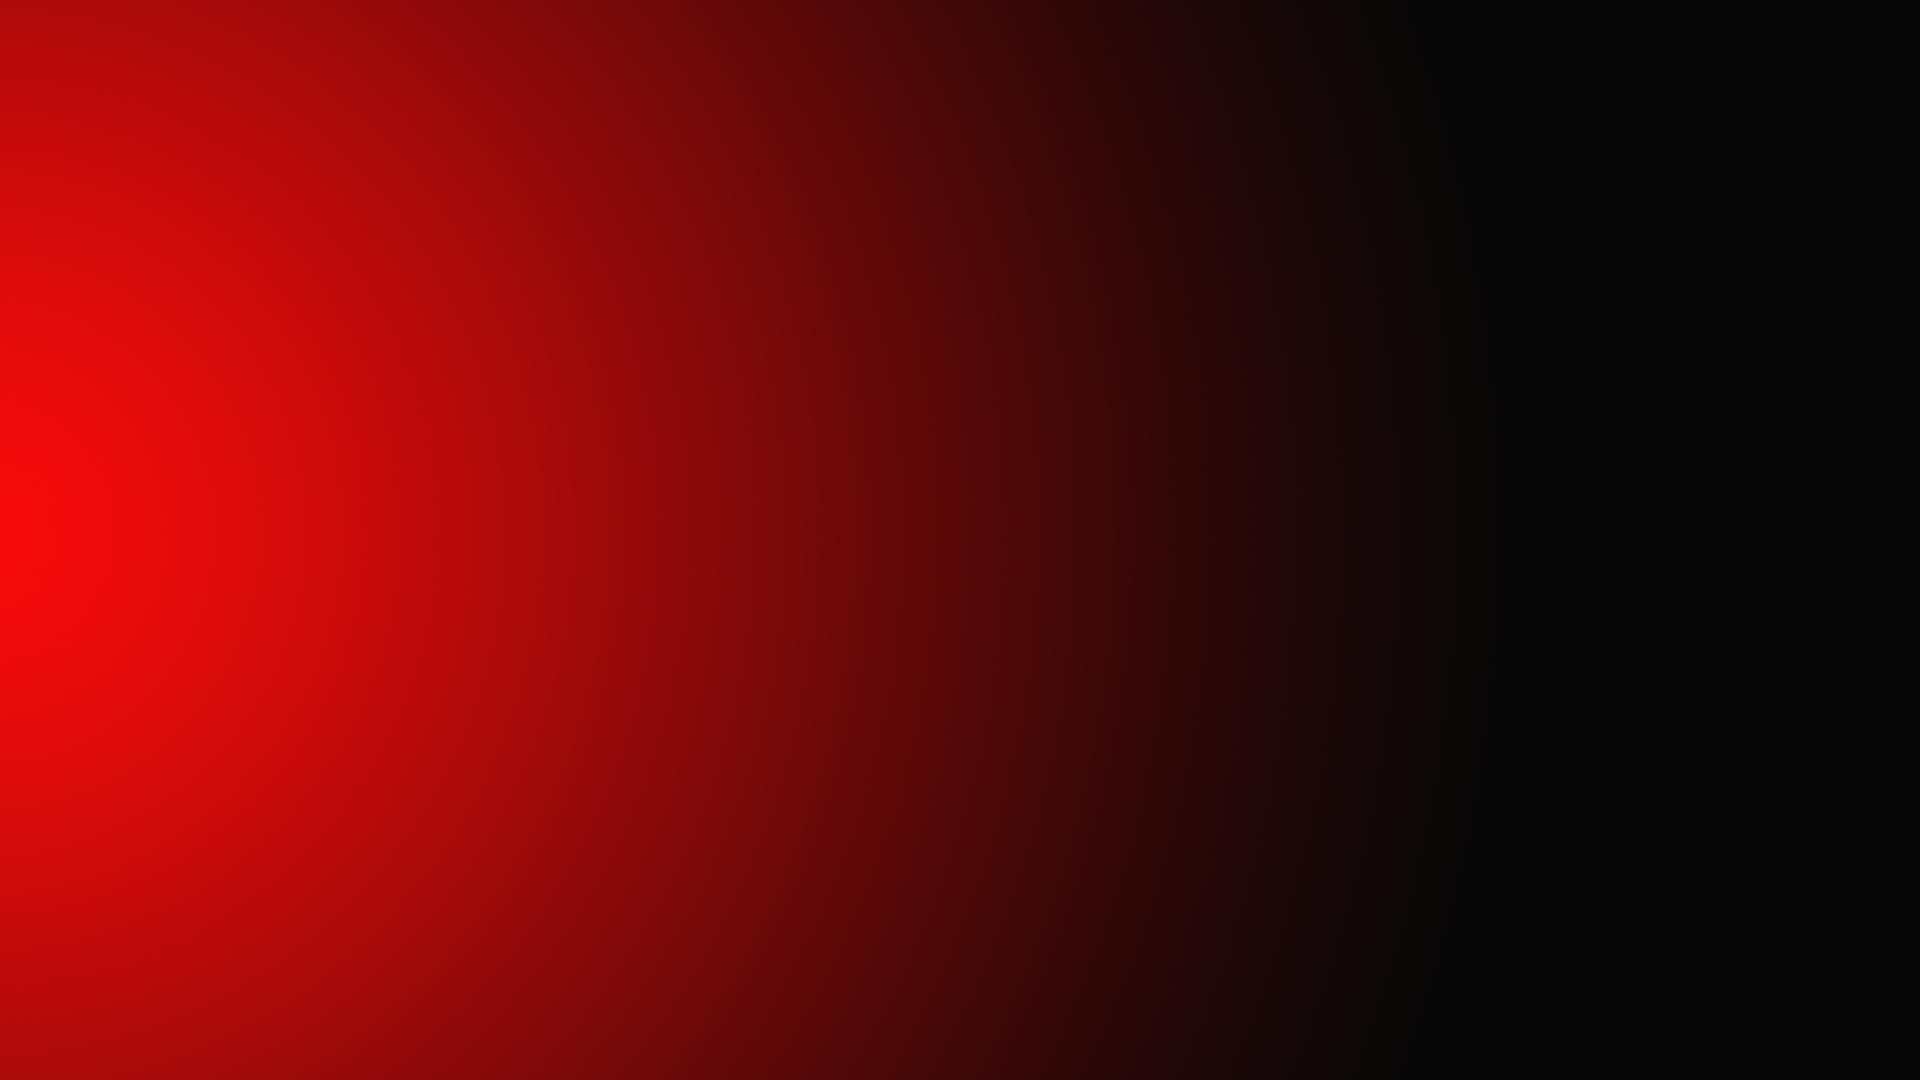 1920x1080 Red And Black Backgrounds - Wallpaper Cave